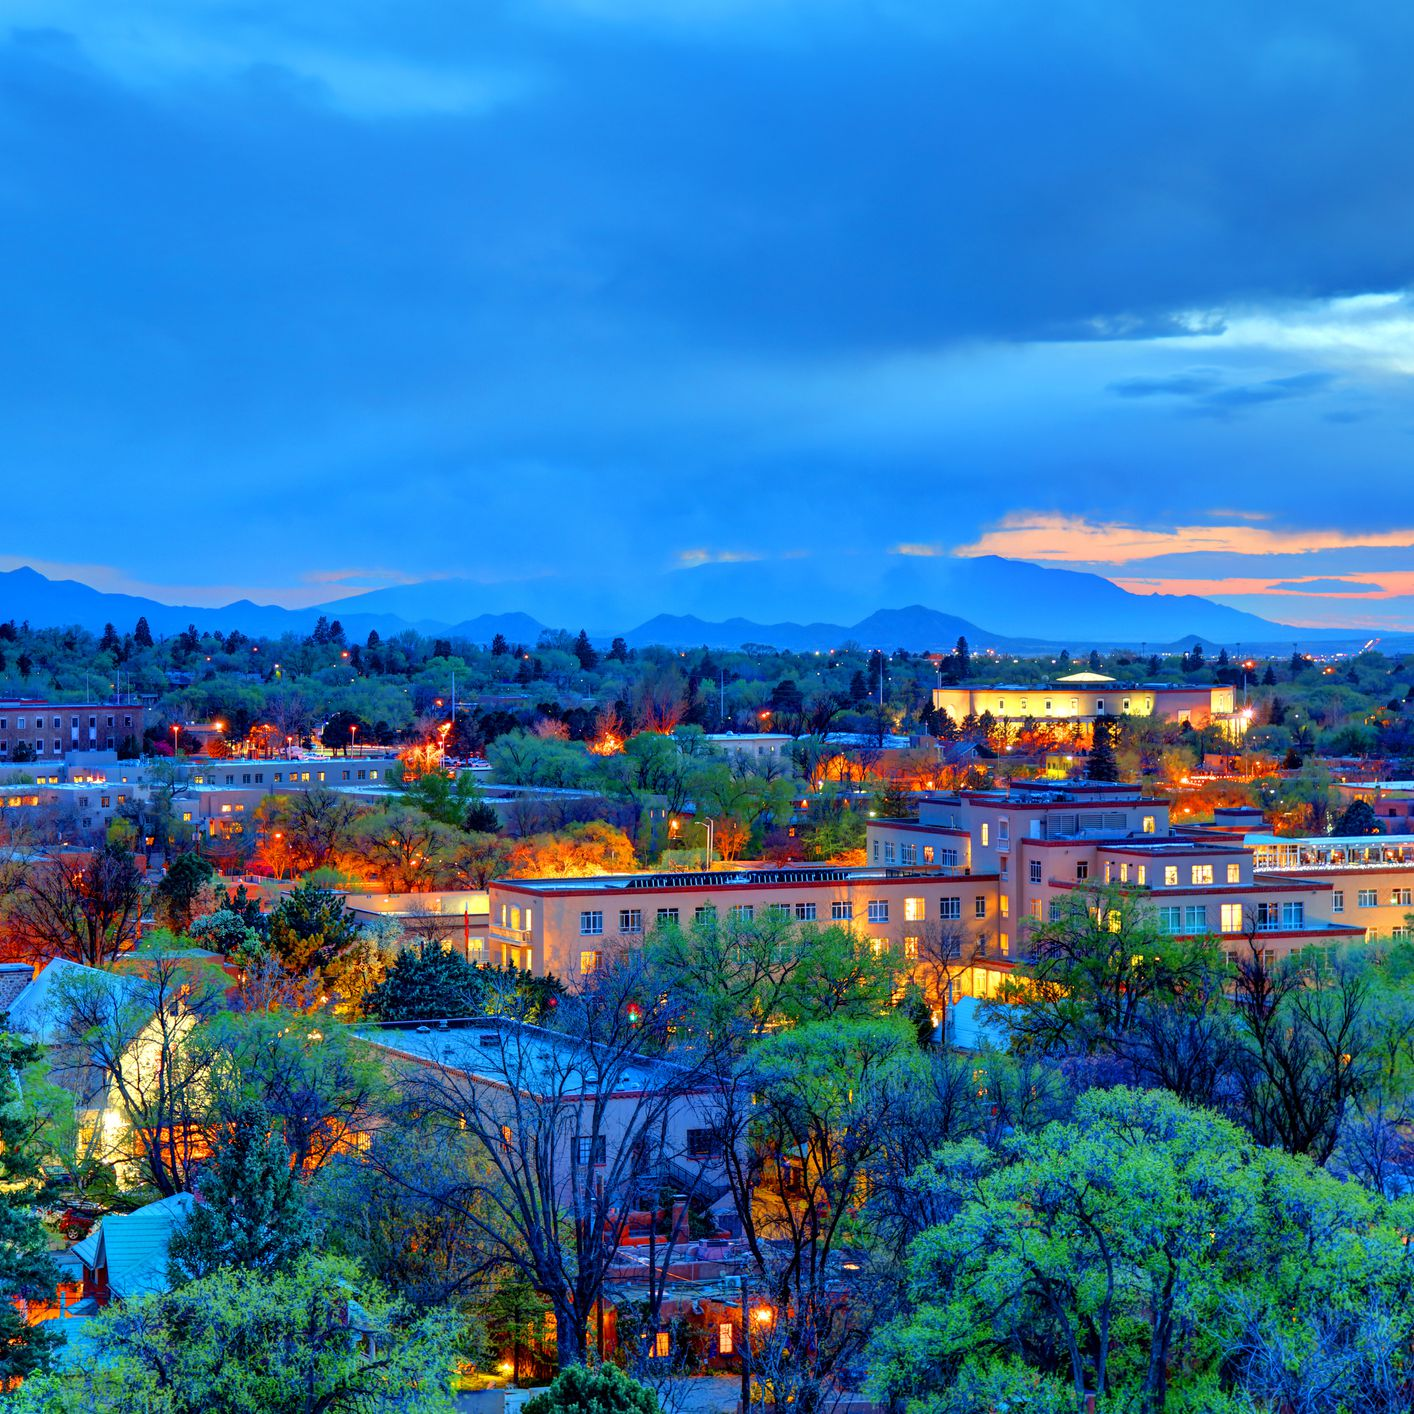 Santa Fe, New Mexico Guide: Planning Your Trip